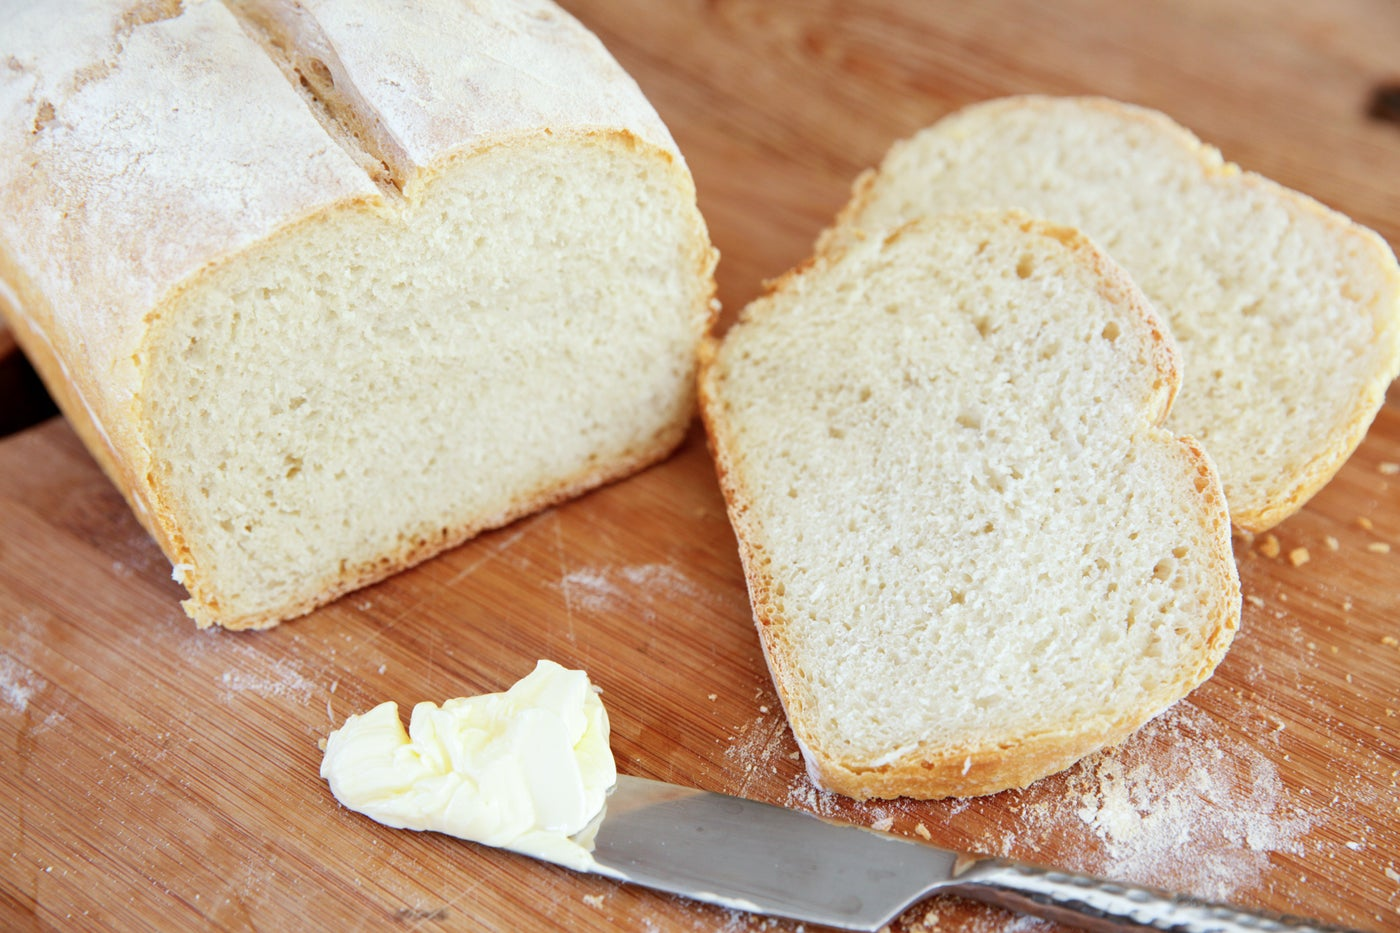 Slicing and Serving Bread